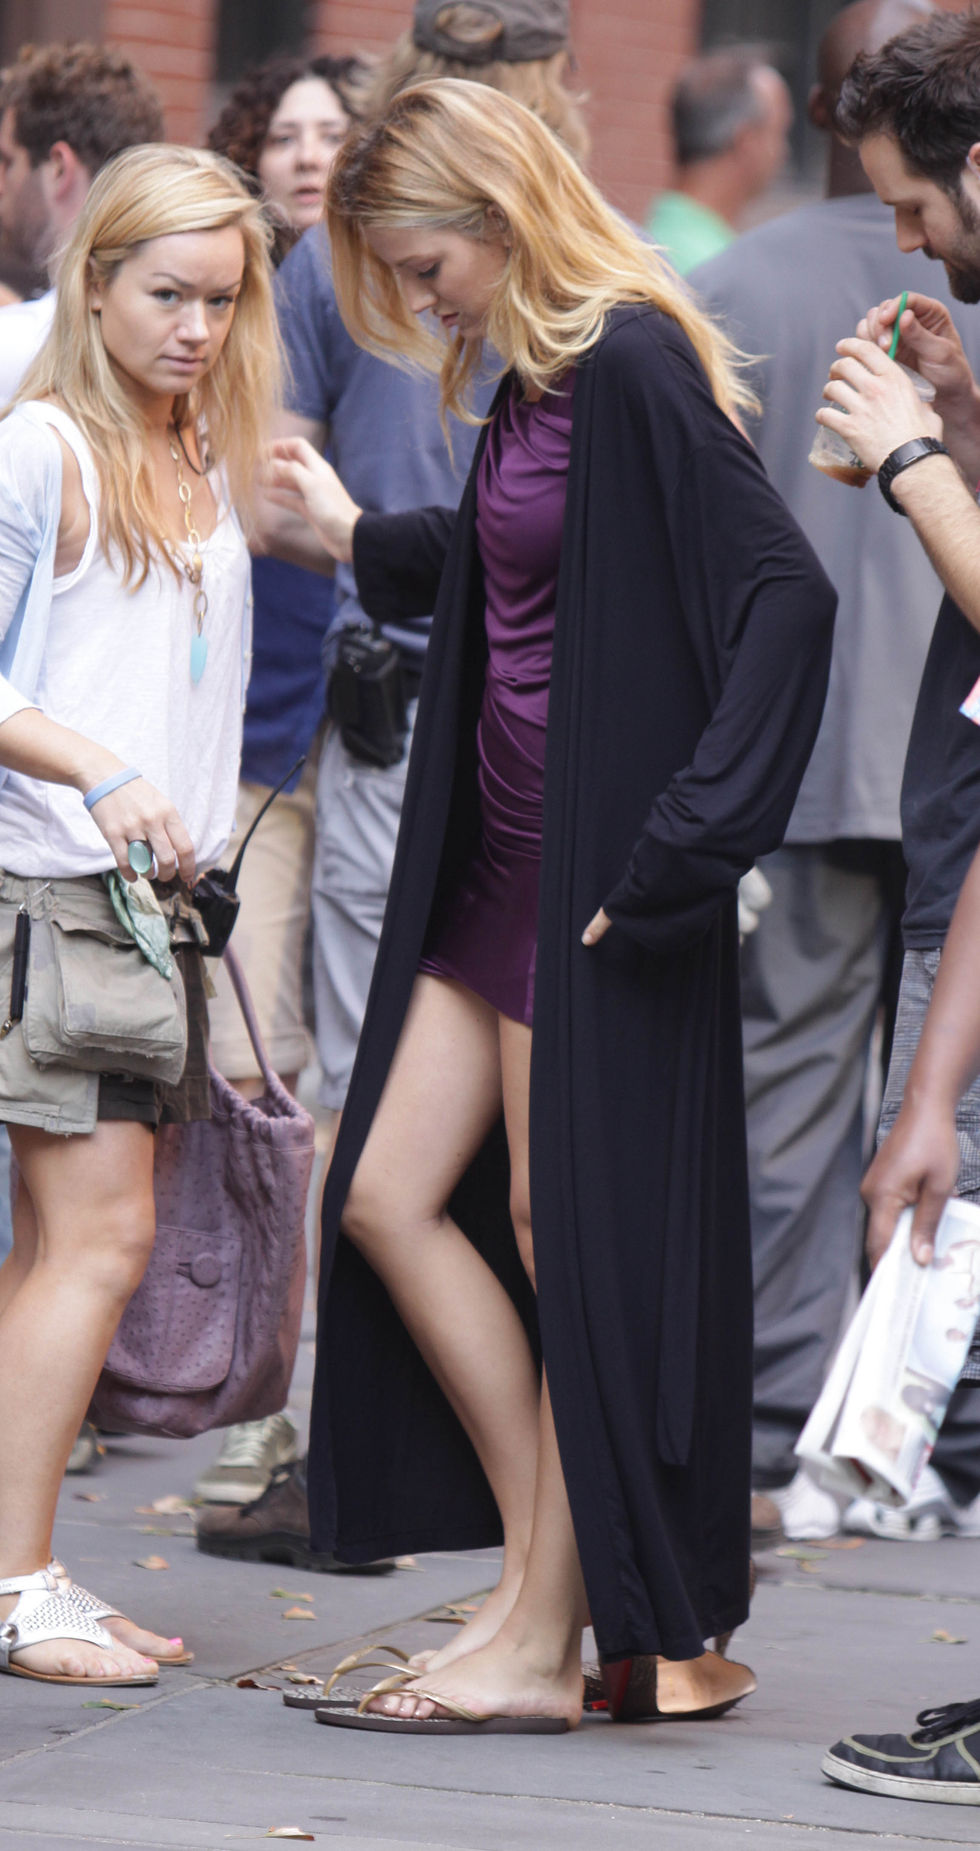 blake-lively-on-set-of-gossip-girl-in-new-york-01